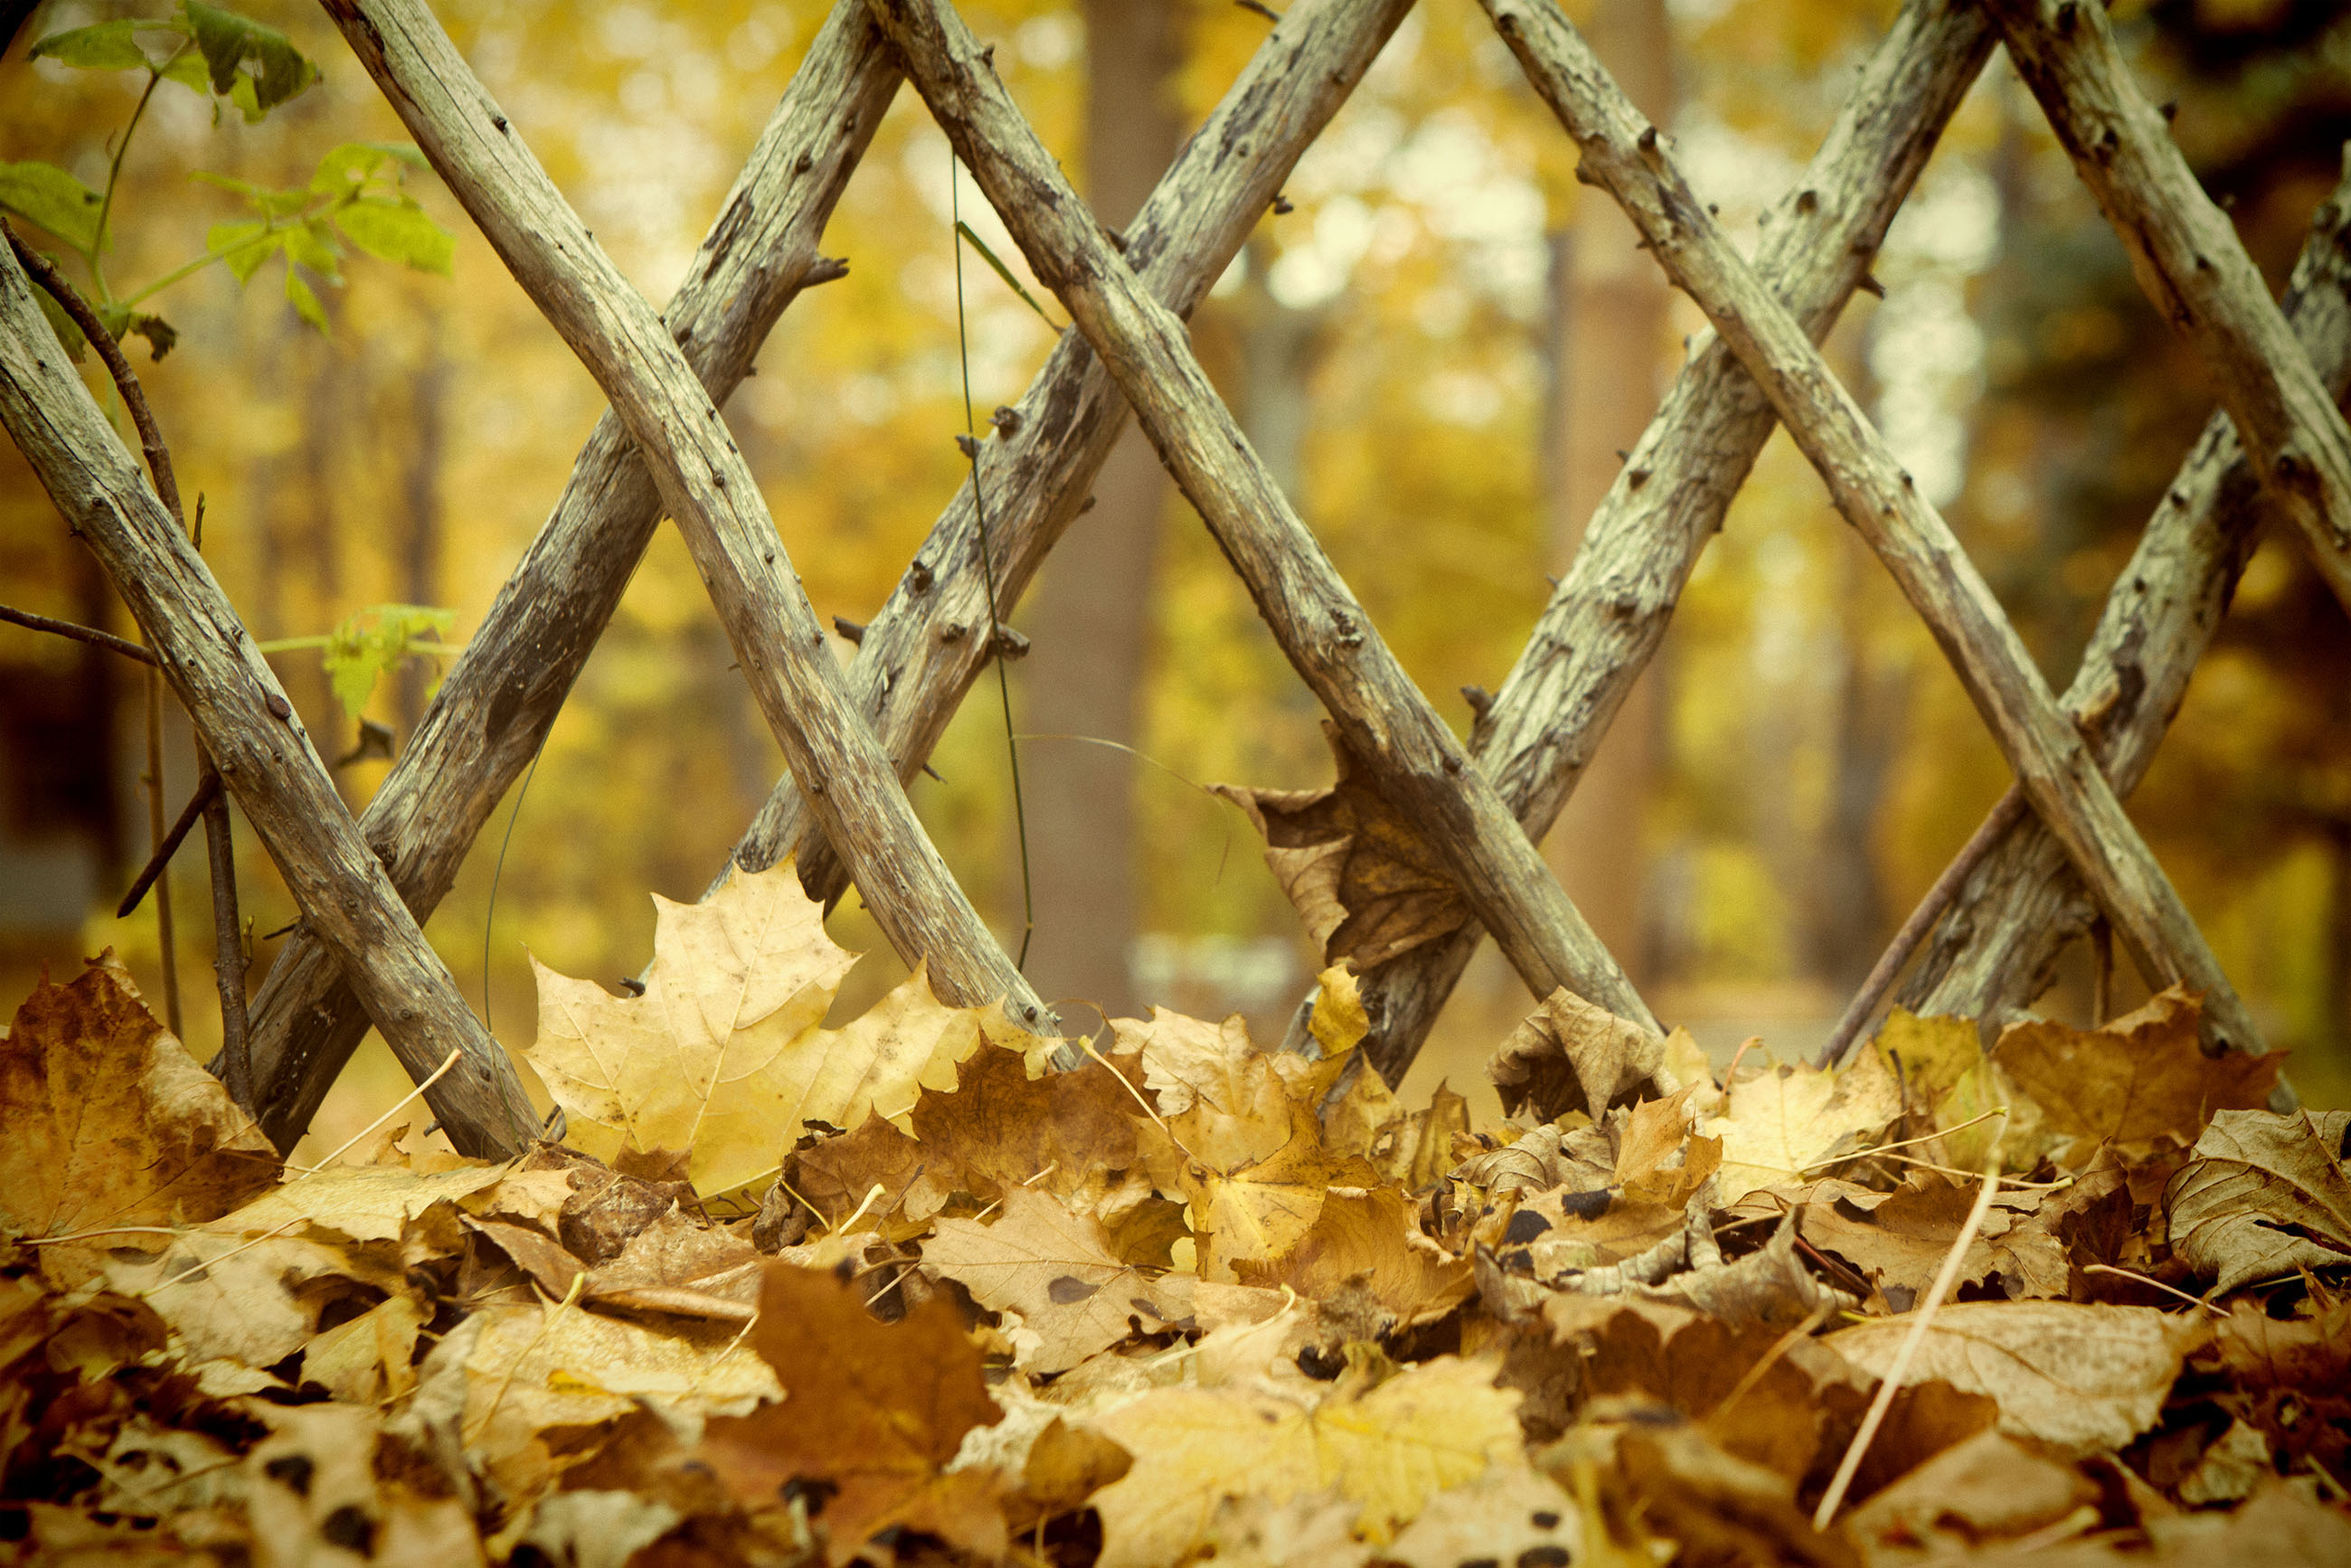 Leaves and fence, Autumn, Nature, Wooden, Wood, HQ Photo